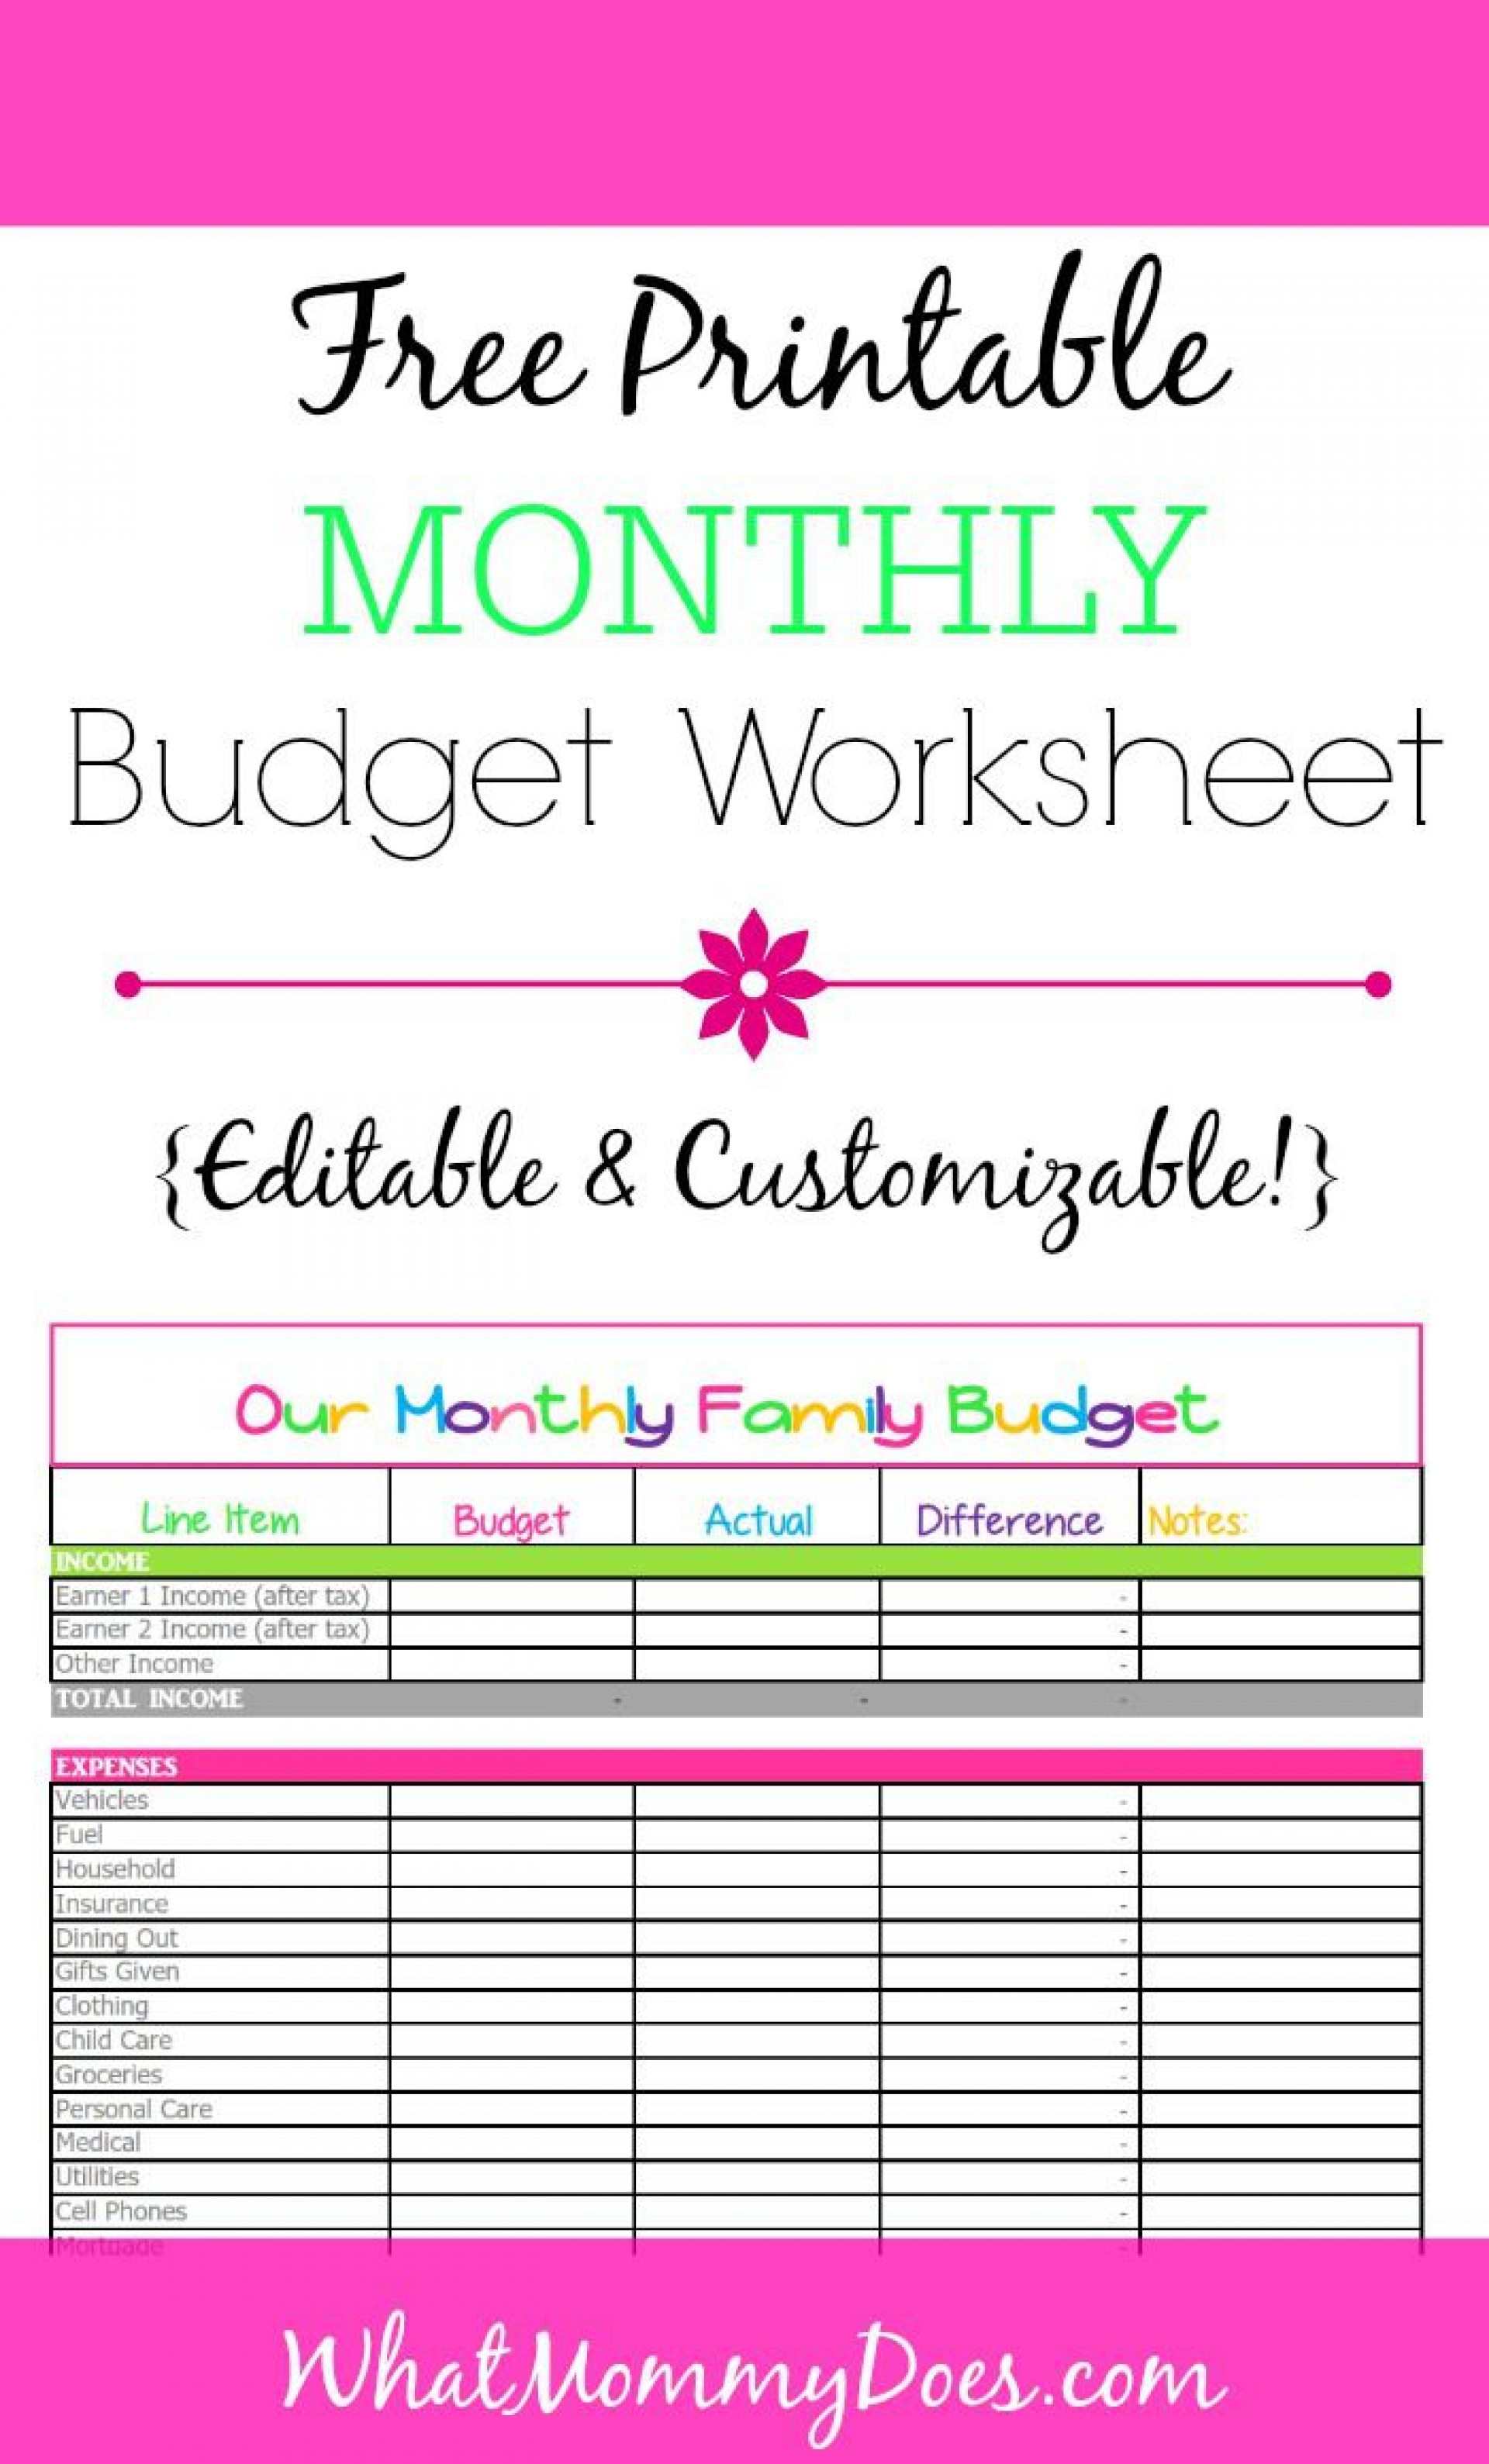 008 Awesome Free Printable Home Budget Template Photo  Form Sheet1920